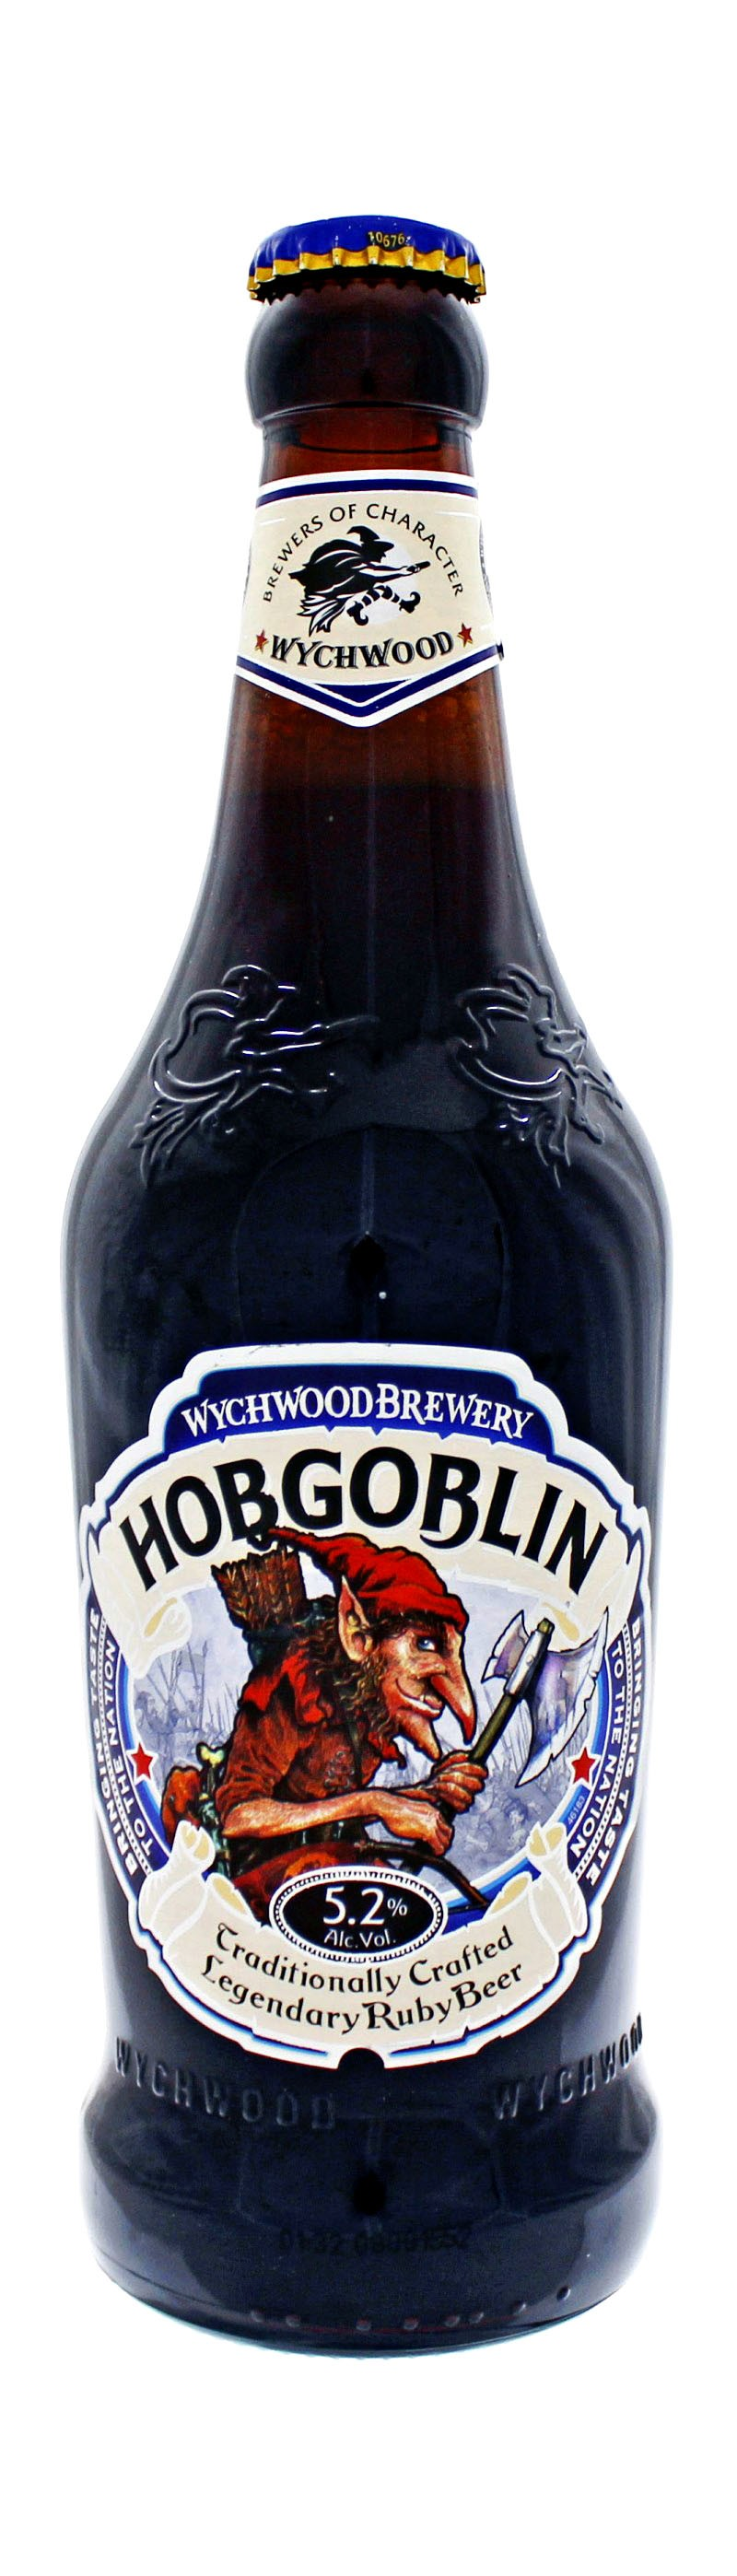 Photo de face de Hobgoblin